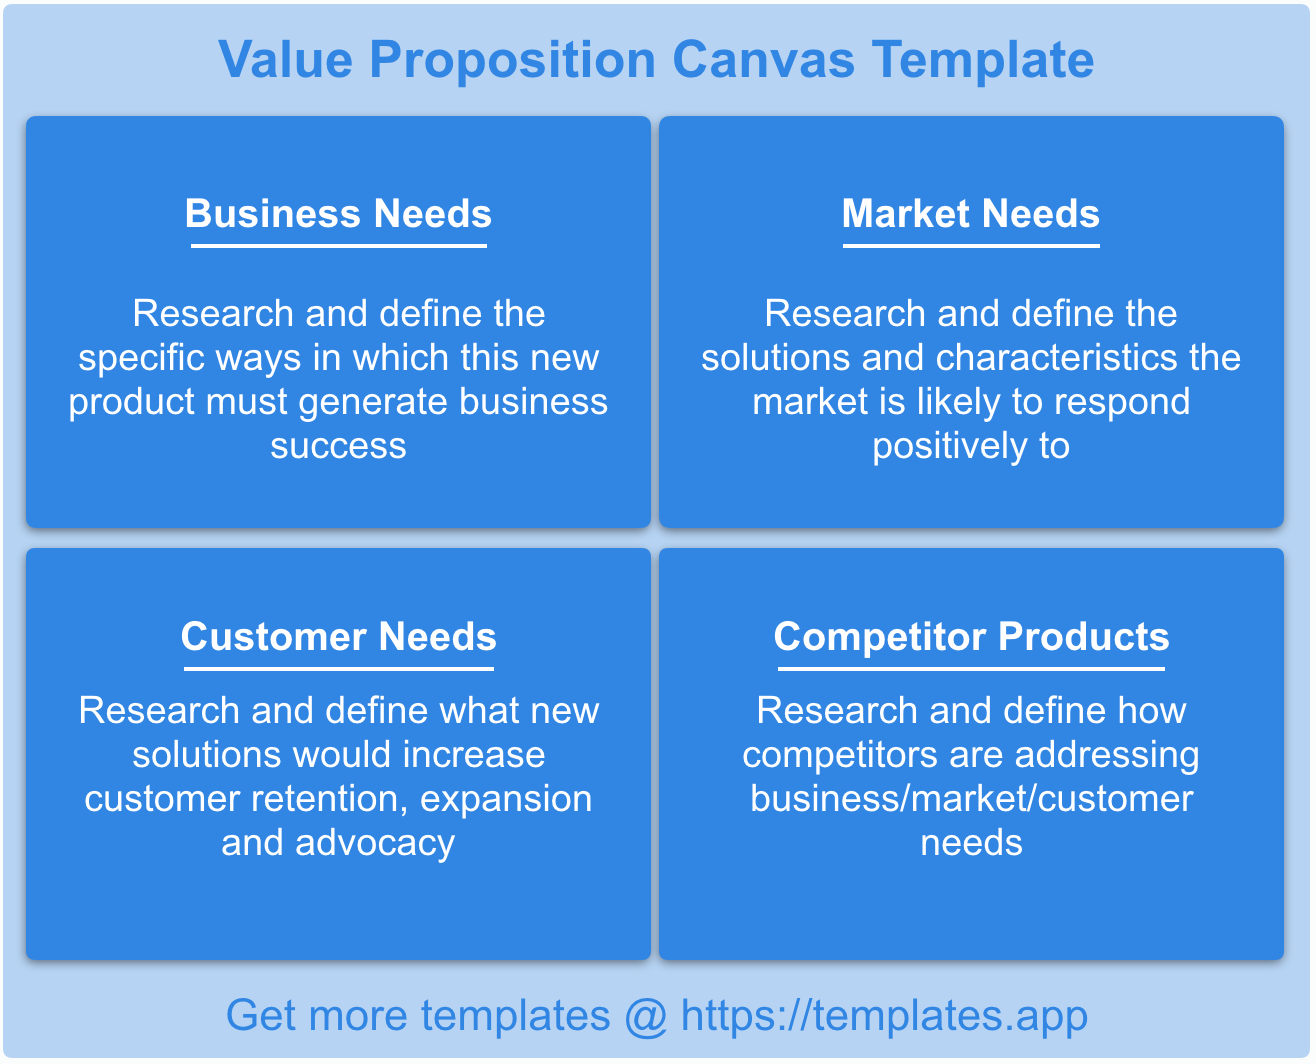 Value Proposition Canvas Template by templates.app